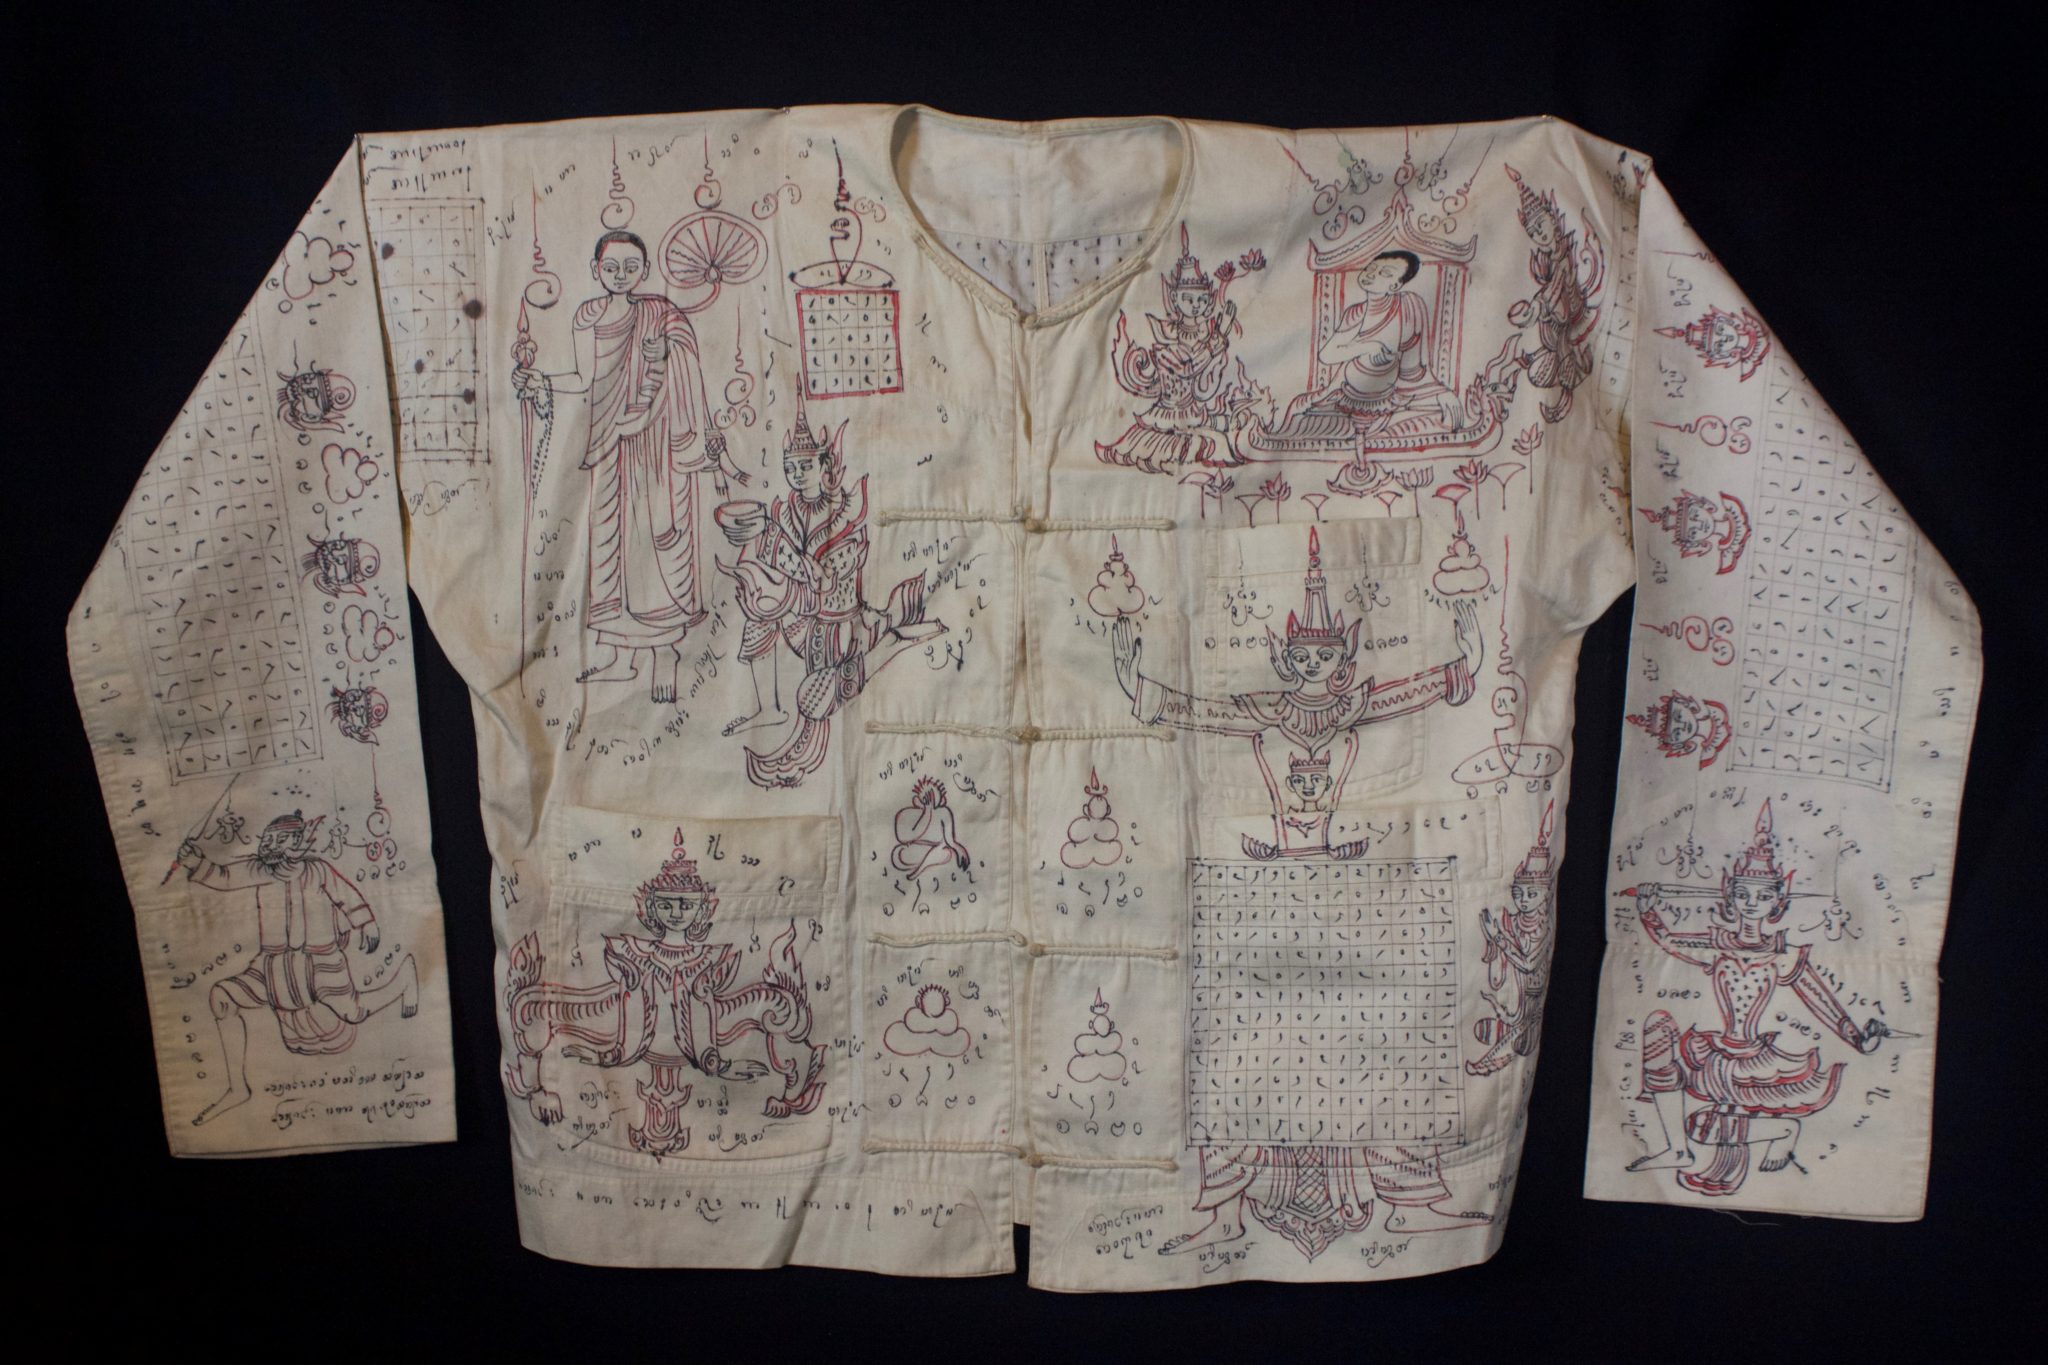 """Amulet Yantra Shirt - extremely rare and powerful protective garment Thailand Vietnamese tribal shaman Mid 20th c. Cotton, ink, pigment Handmade and drawn by the shaman, it depicts prayers, signs, numbers and a deities. The sacred cloth is an undergarment worn as a talisman with great protective power against physical harm, like bullets, spears, knives, wild animals and evil spirits. This one may have been commissioned by a wealthy man who felt he needed protection. Soldiers would also wear these if they could afford one. 21"""" x 61"""" $2900"""